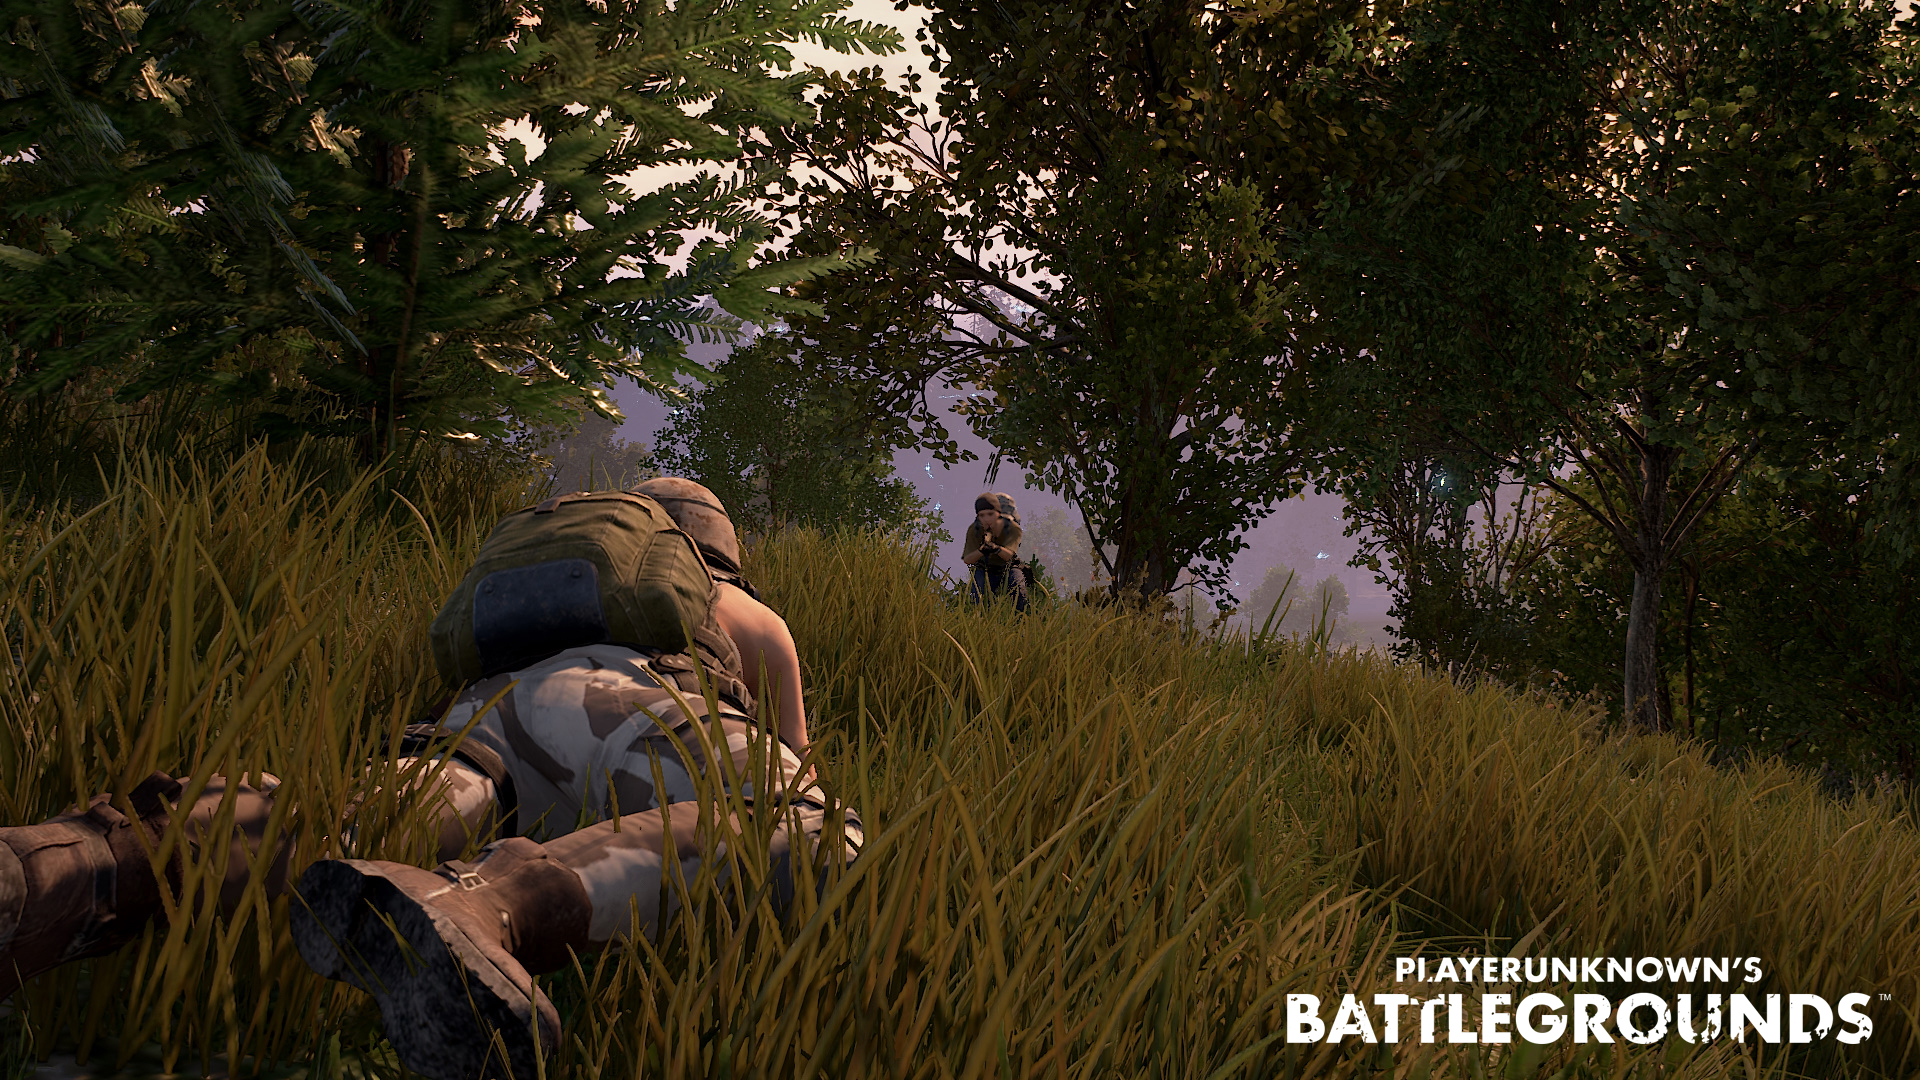 Video Pubg Hd: PLAYERUNKNOWN'S BATTLEGROUNDS Wallpapers, Pictures, Images